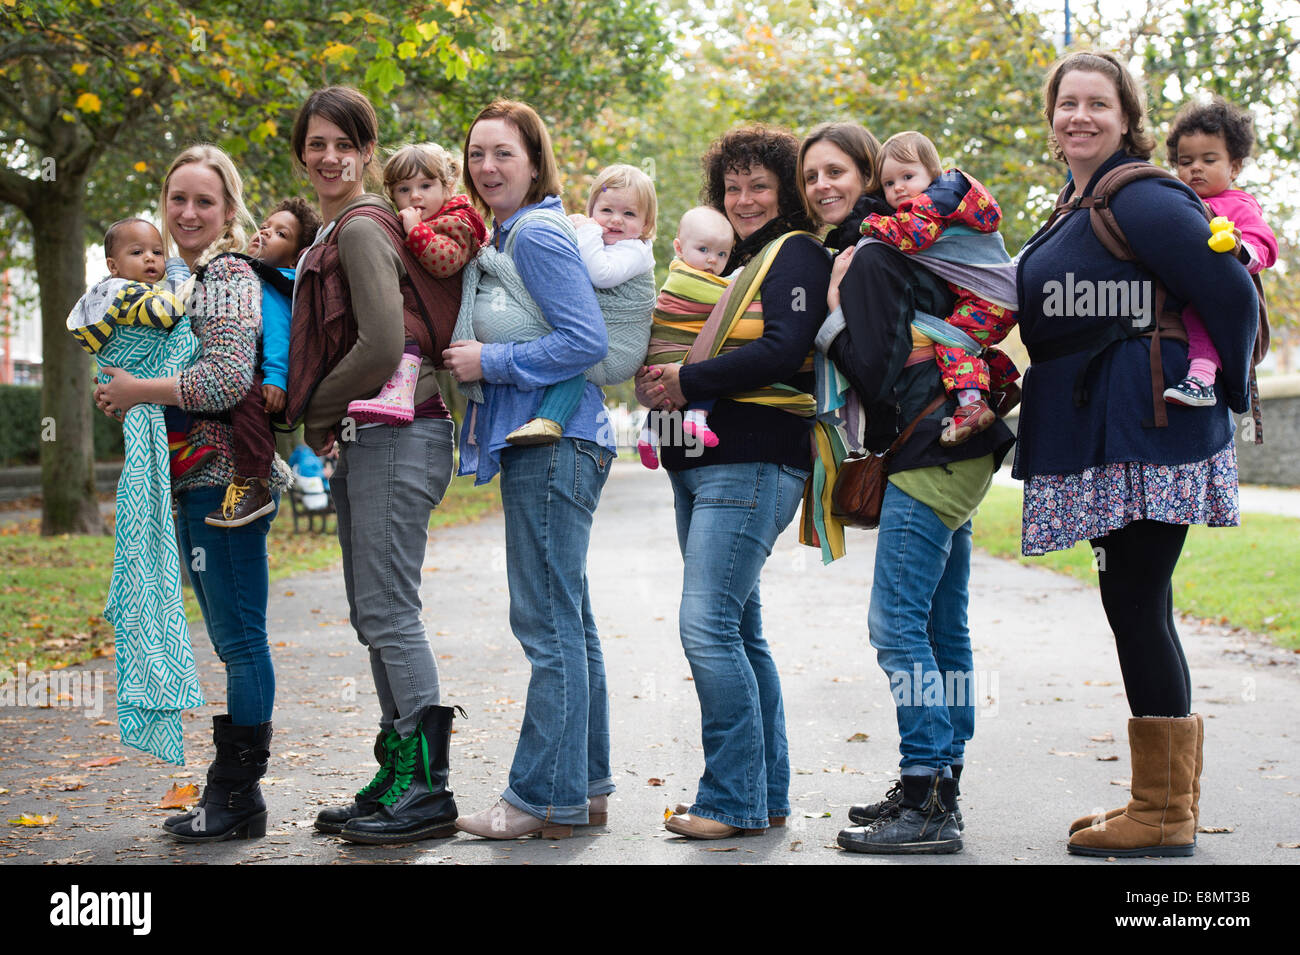 Aberystwyth Wales UK, Saturday 11 October 2014 A group of mothers with their young children held close in slings - Stock Image